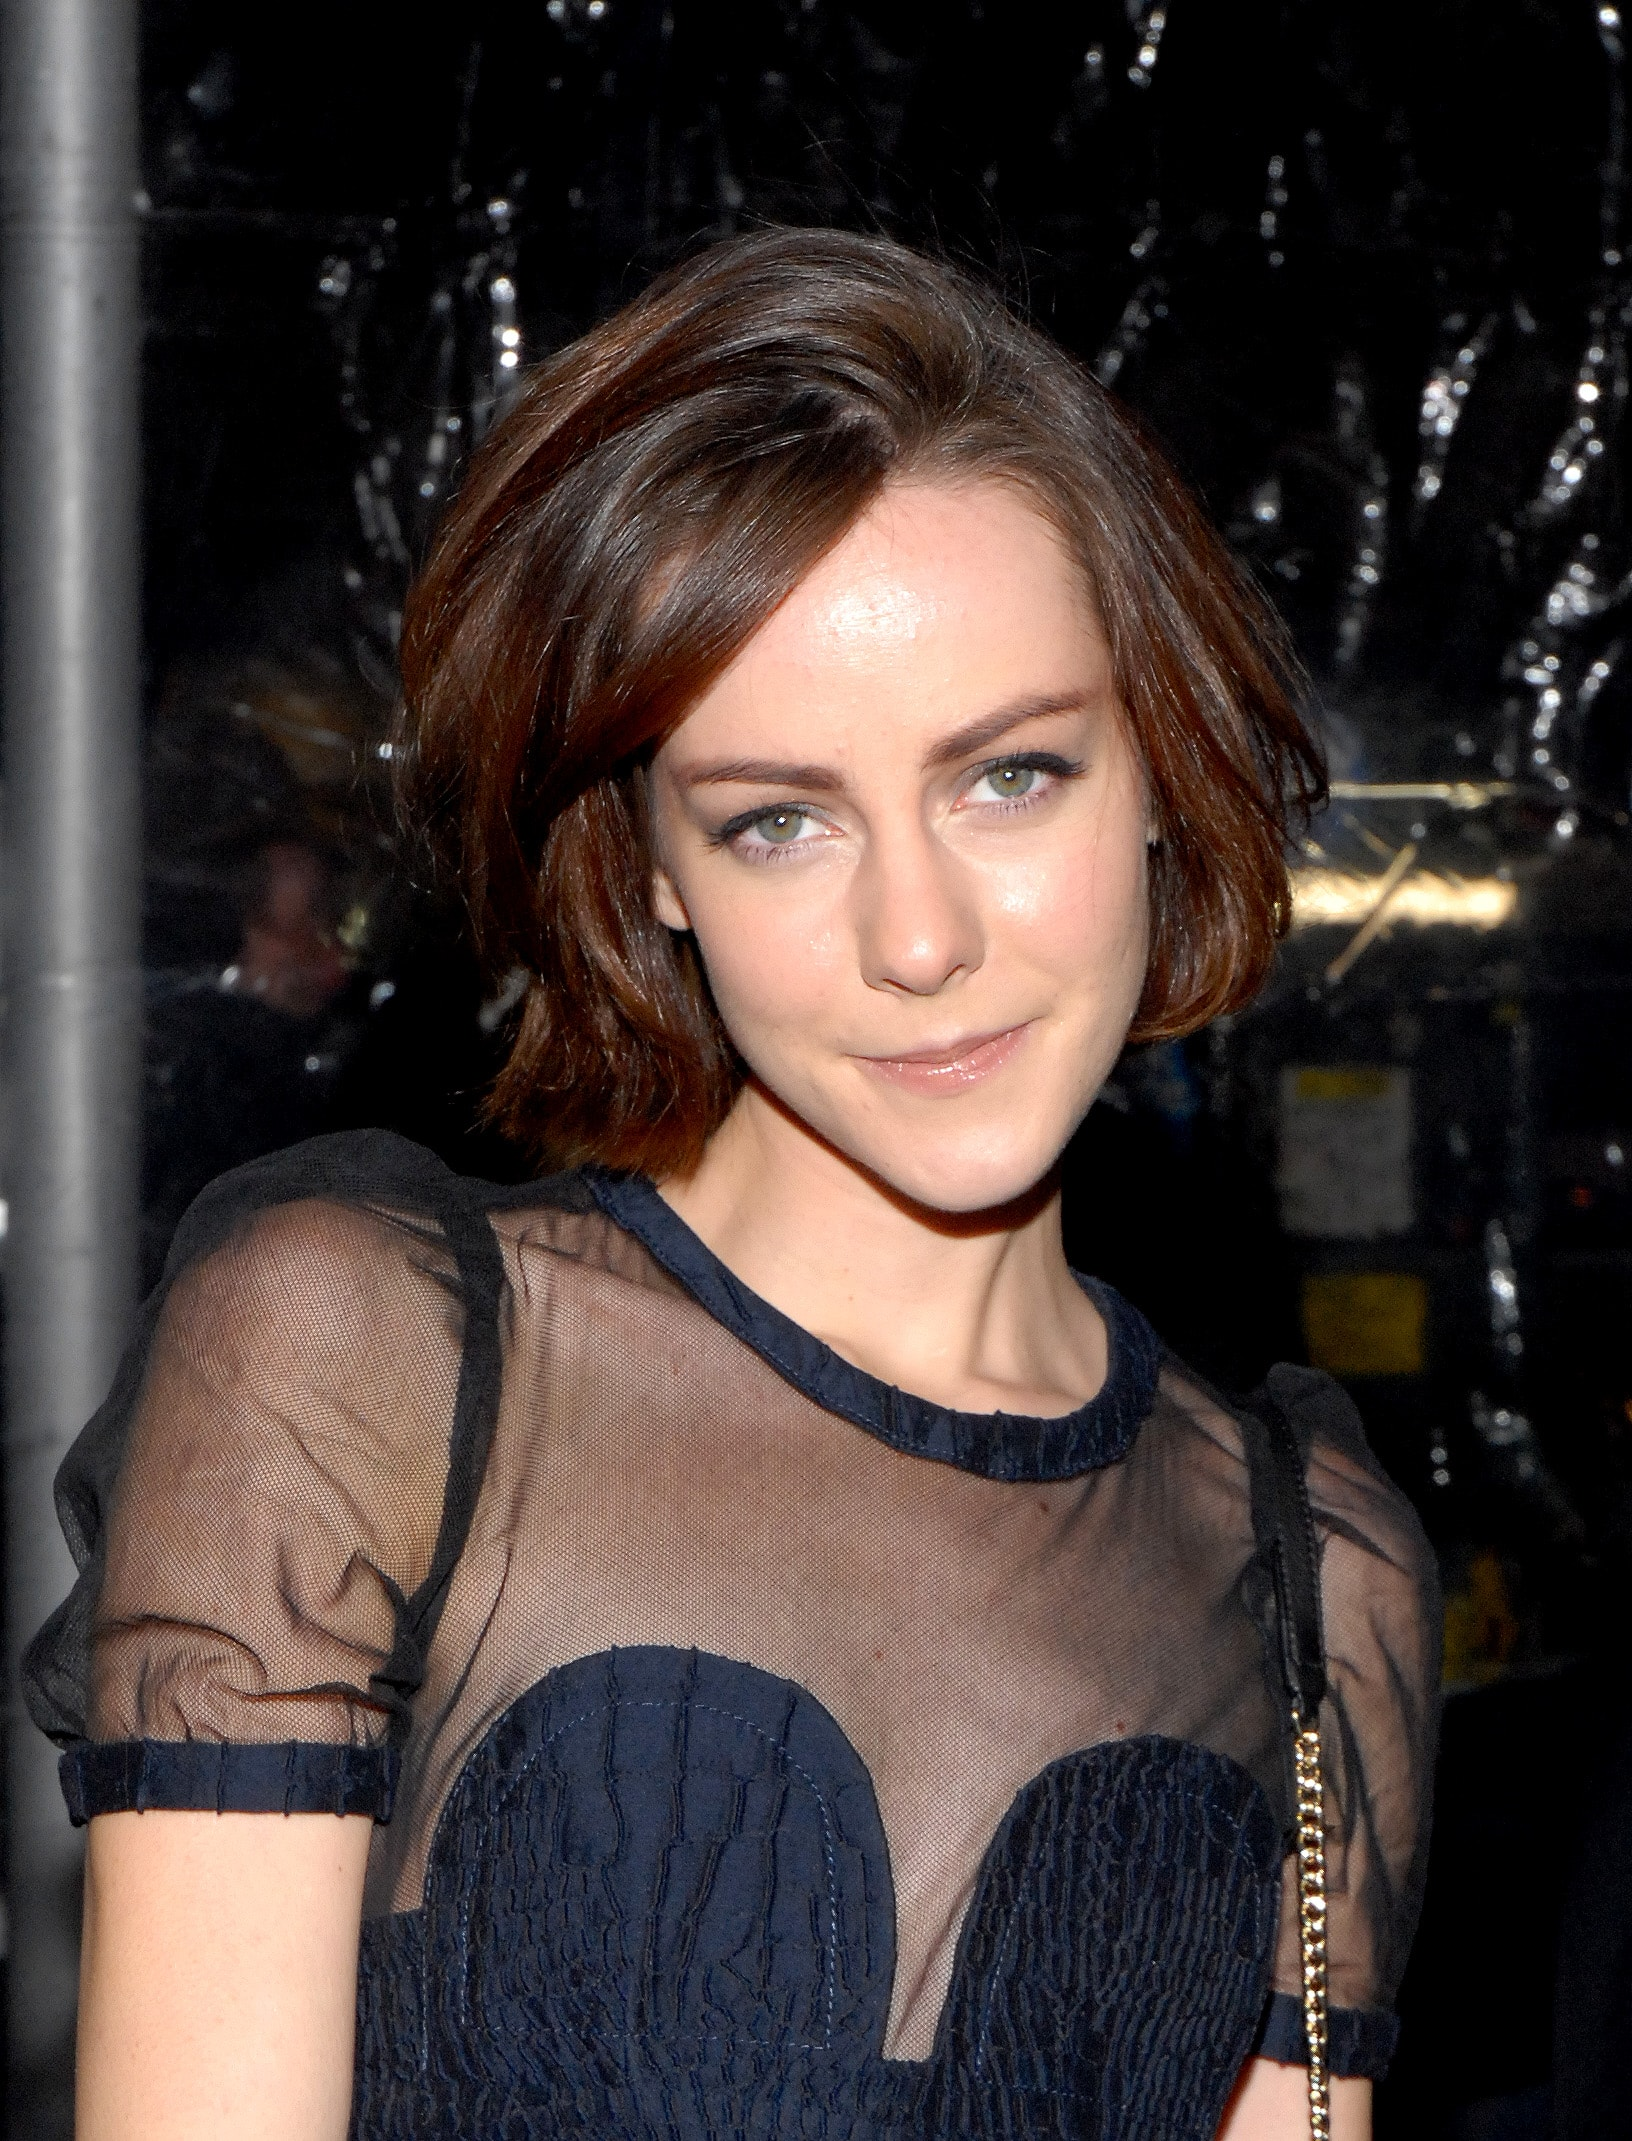 Jena Malone HQ wallpapers